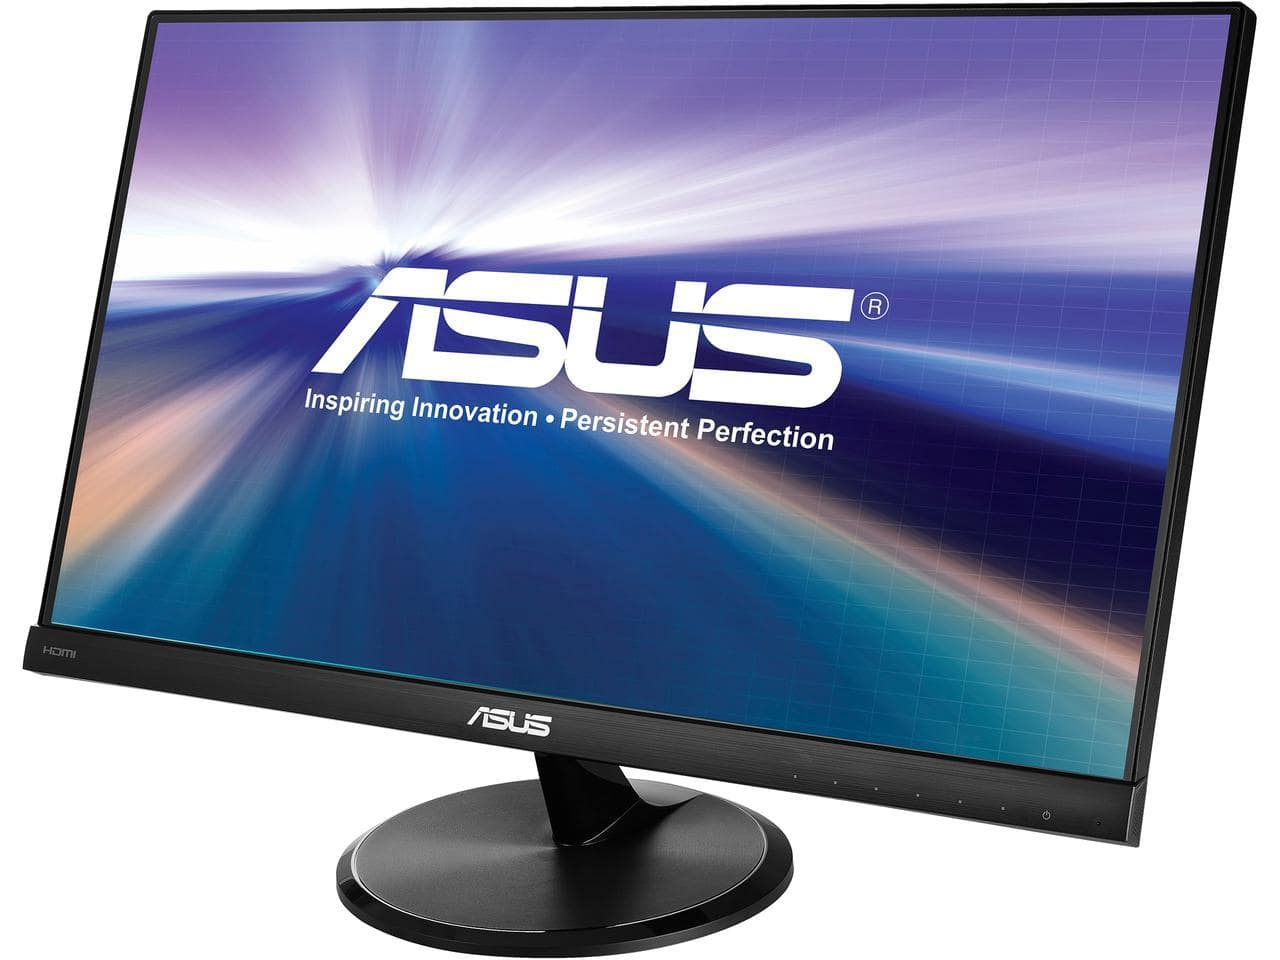 """ASUS VC239H 23"""" FHD (1920x1080), IPS, Flicker free, w/speakers $89.99 with Promo"""